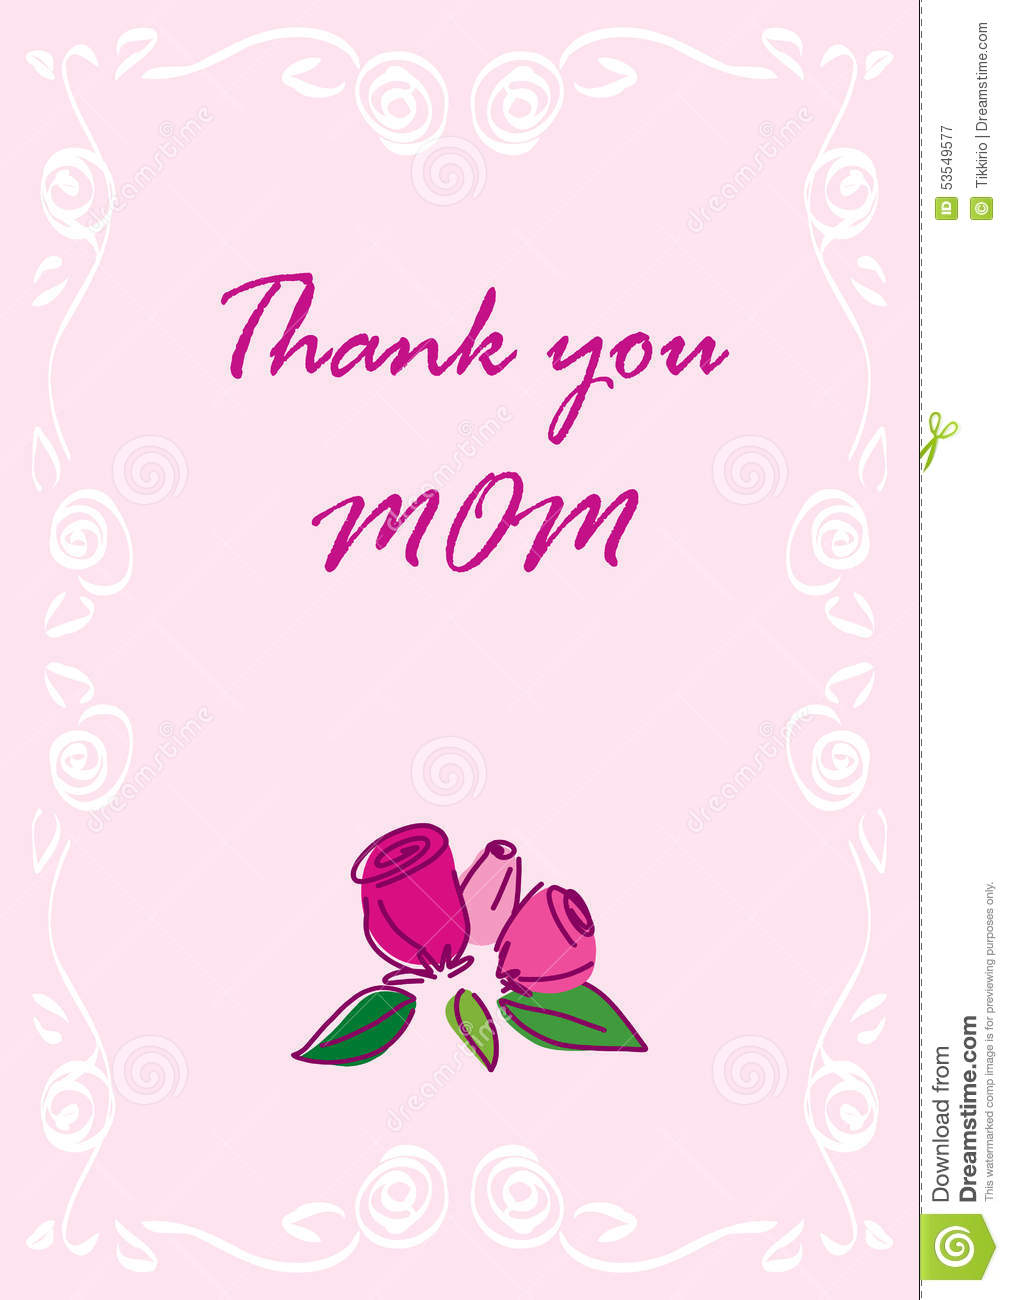 Thank you mom greeting card stock illustration illustration of thank you mom greeting card lettering rose m4hsunfo Images